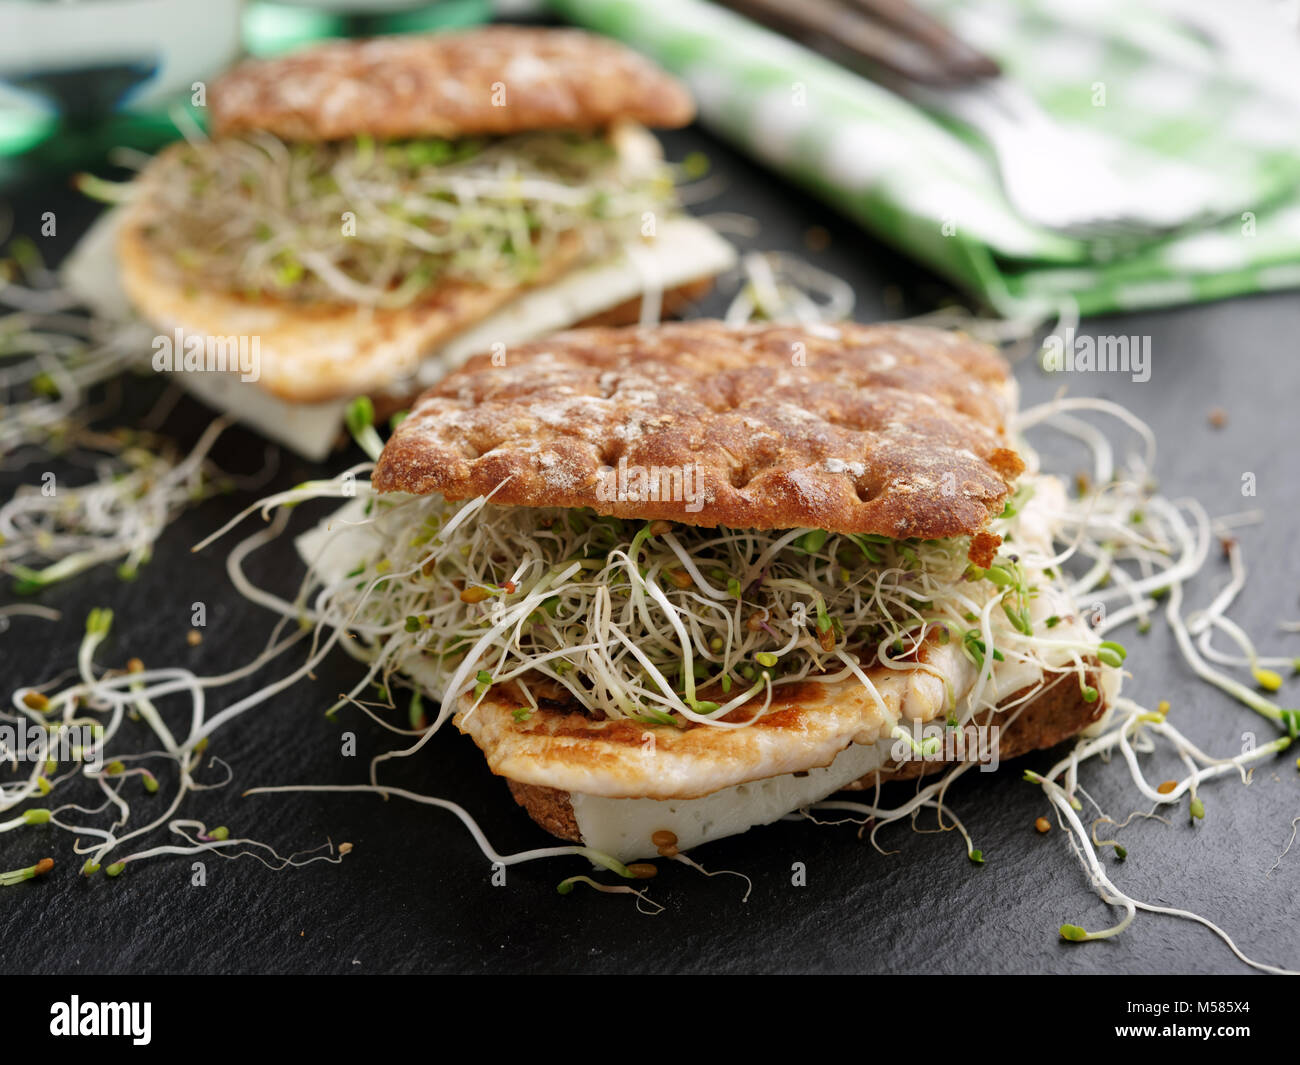 Two sandwiches with grilled turkey meat, slice of cheese, and radish sprouts on a slate cutting board - Stock Image